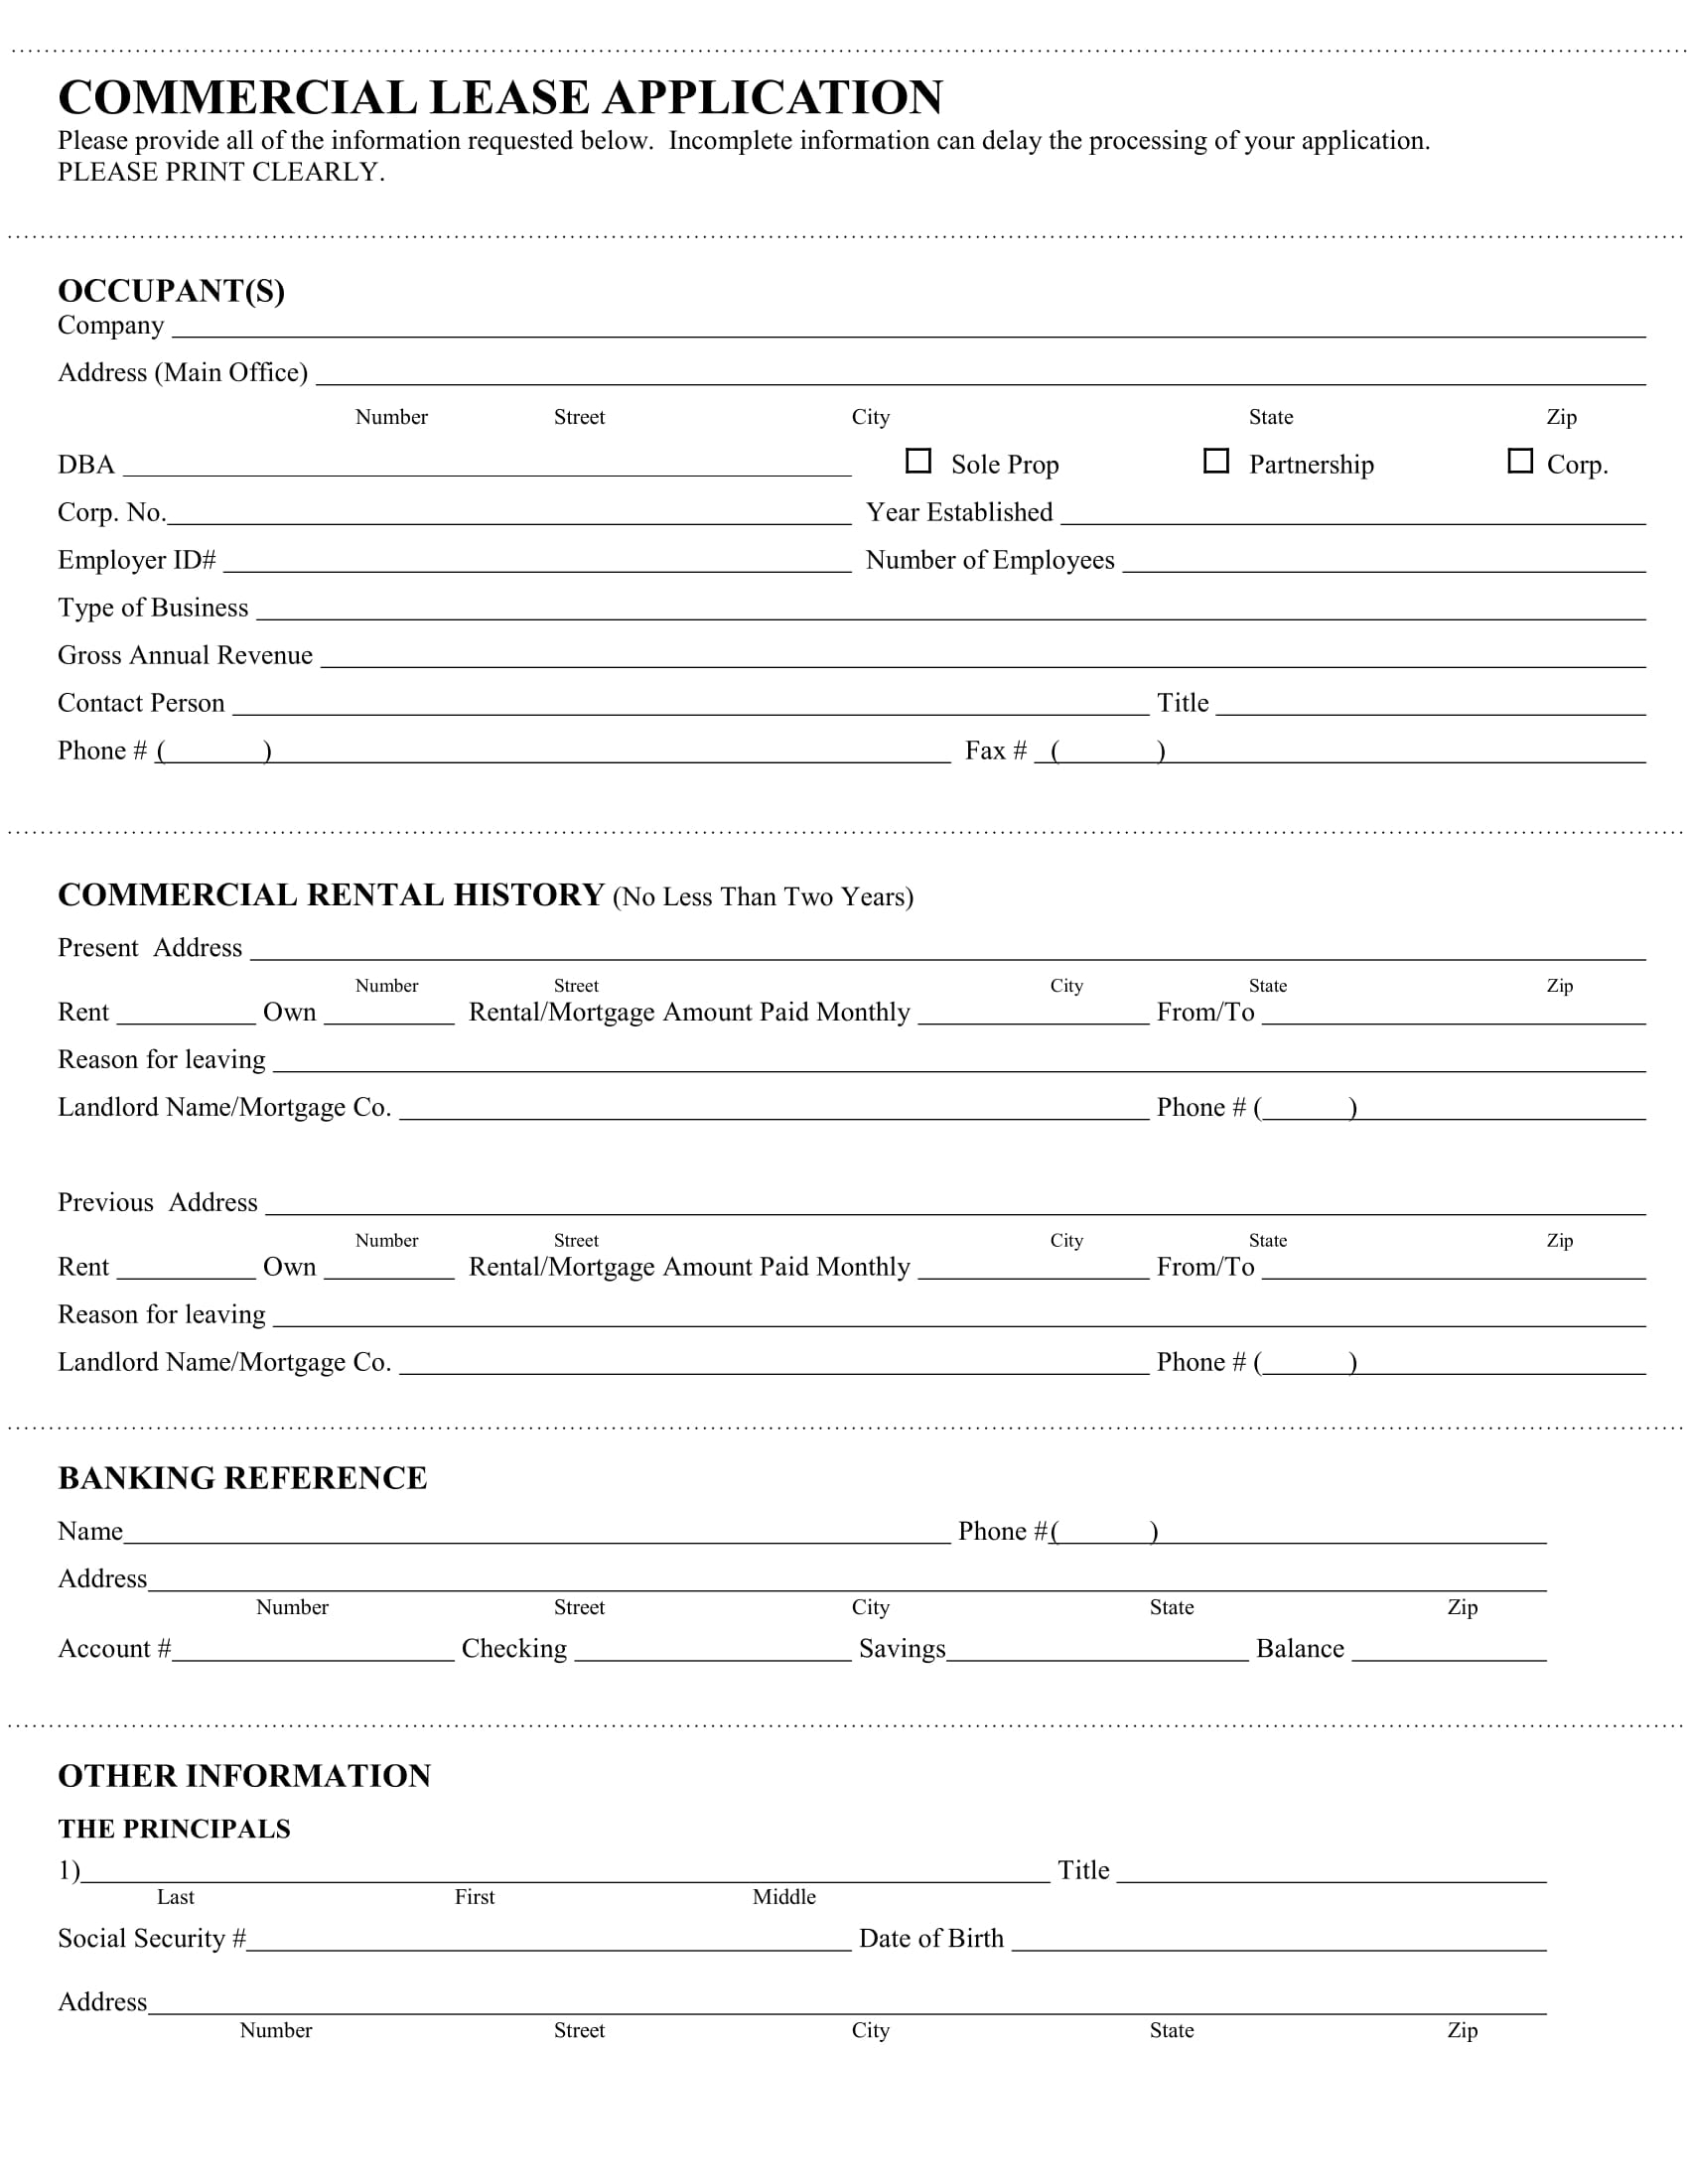 commercial office lease application form 1